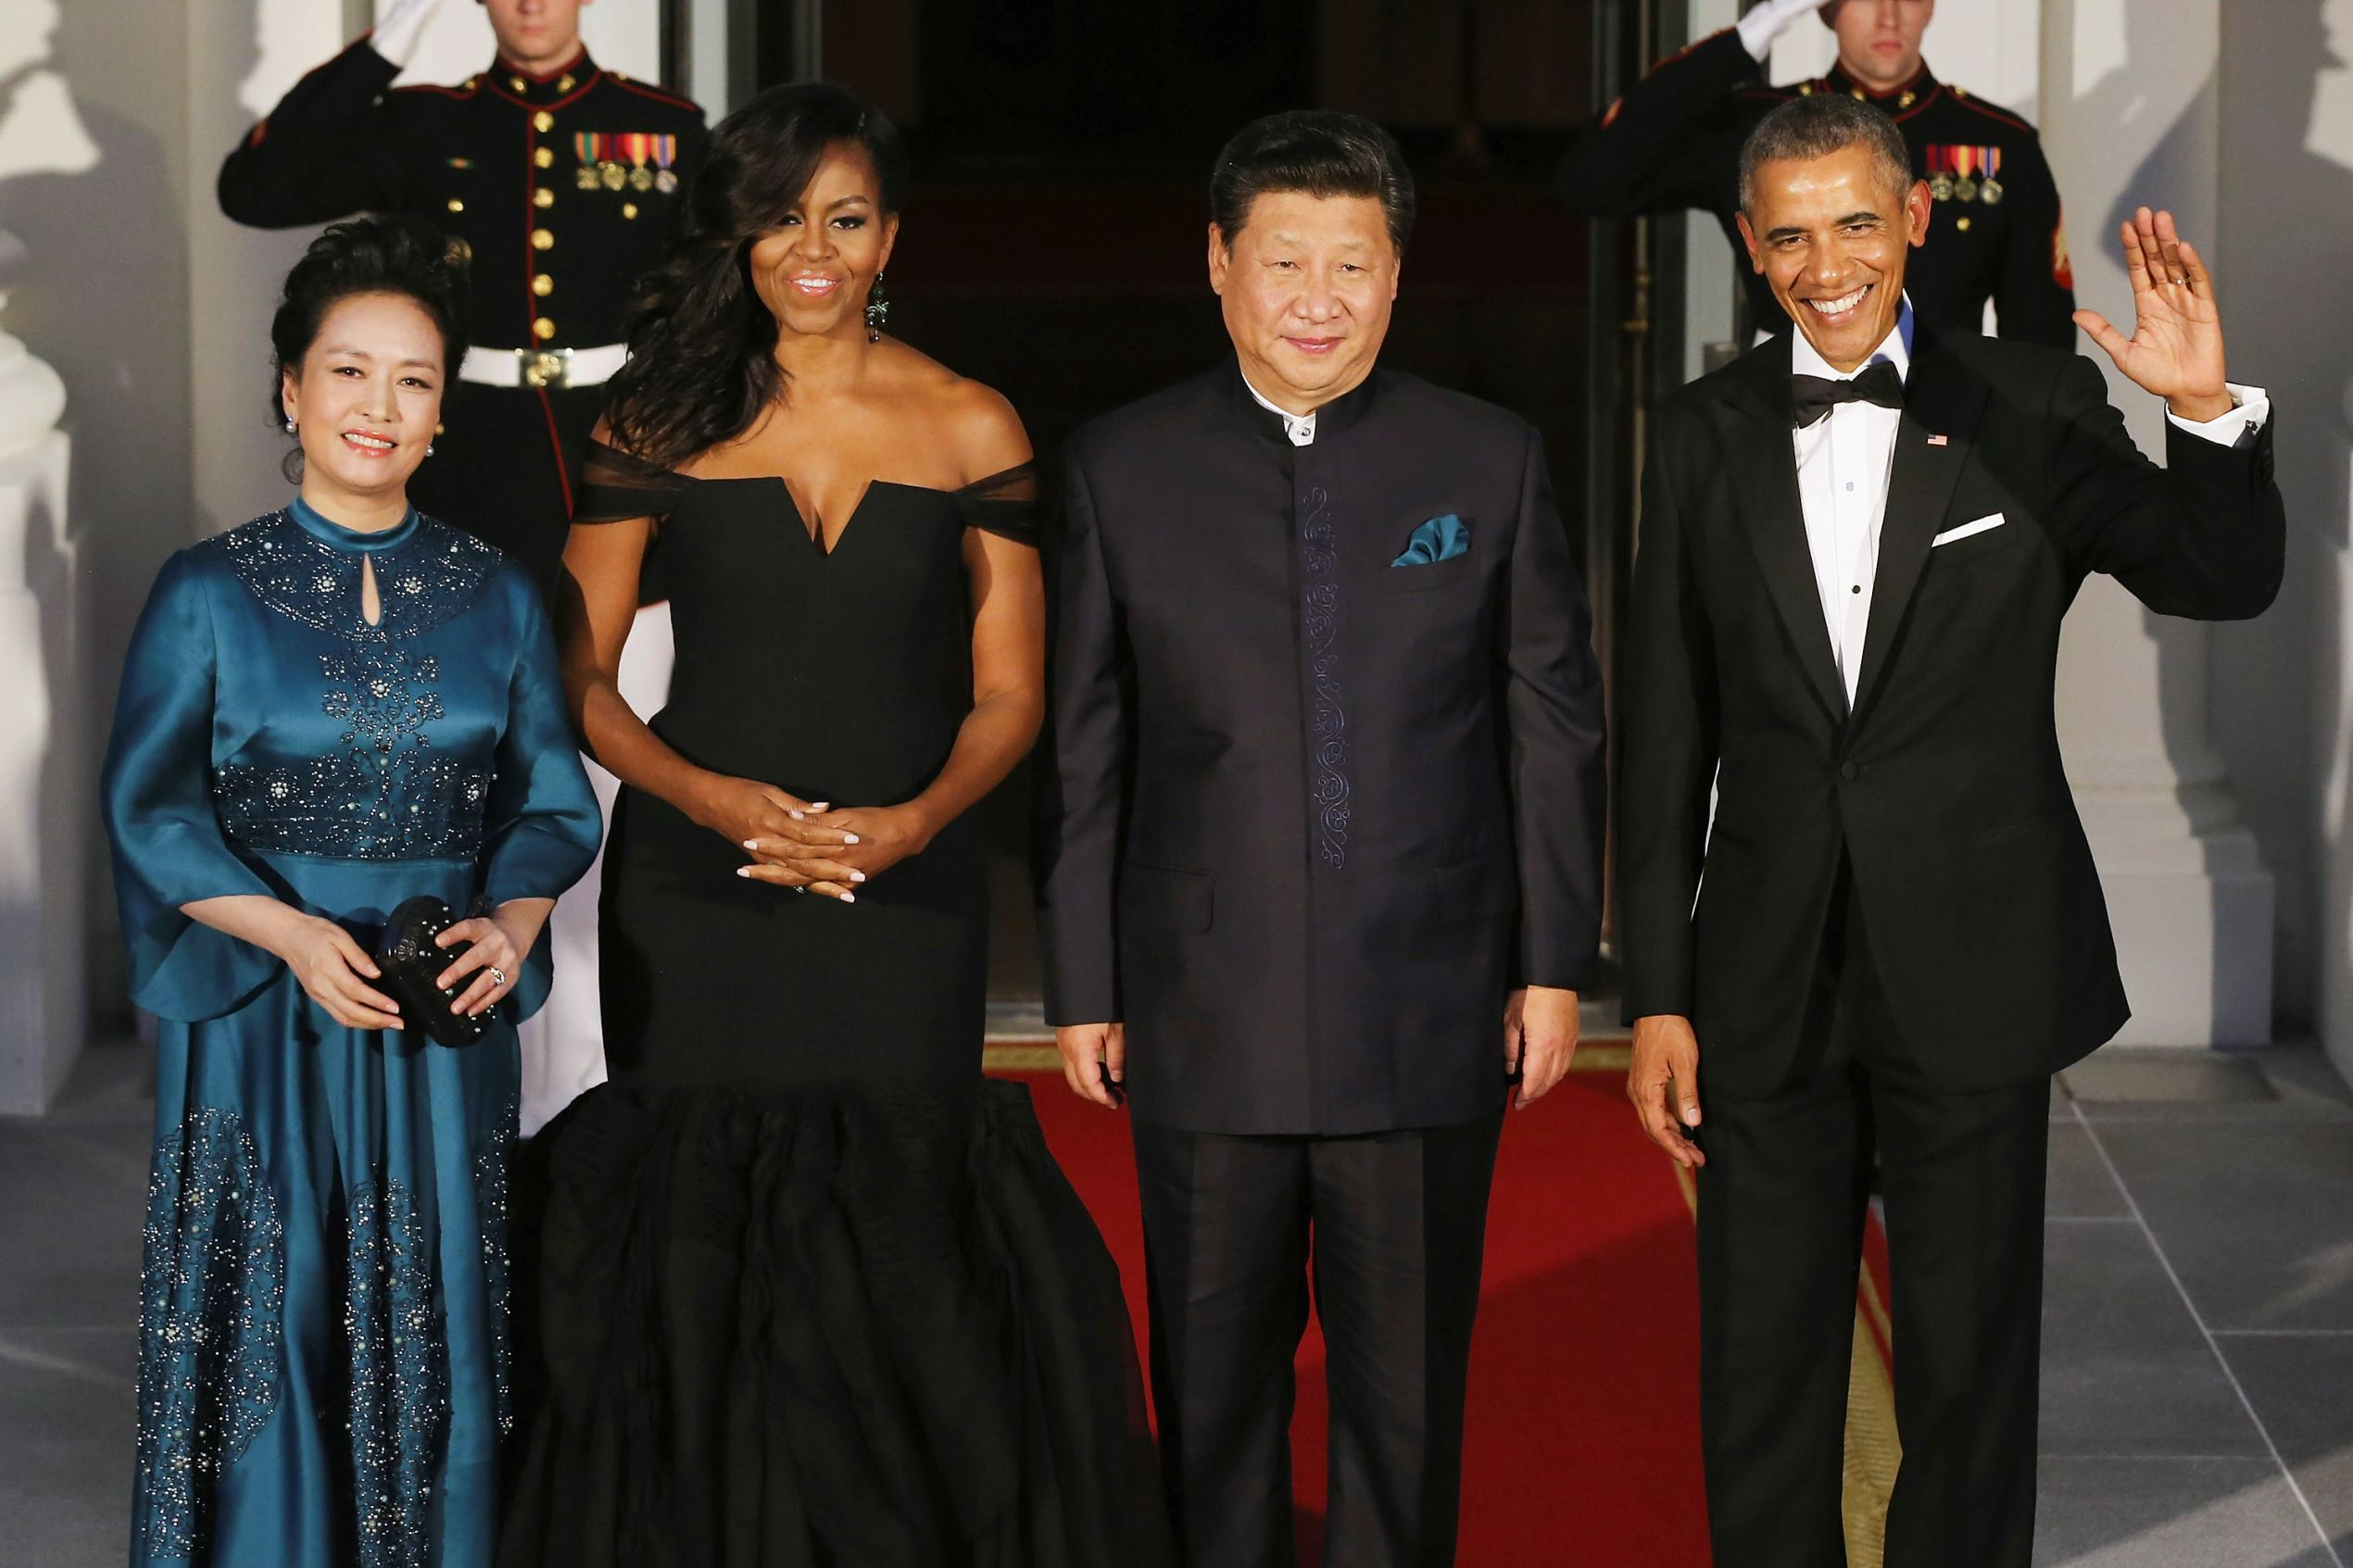 (L-R) Madame Peng Liyuan, U.S. First Lady Michelle Obama, Chinese President Xi Jinping and U.S. President Barack Obama pose for photographers on the North Portico ahead of a state dinner at the White House September 25, 2015 in Washington, DC. Obama and Xi announced an agreement on curbing climate change and an understanding on cyber security.